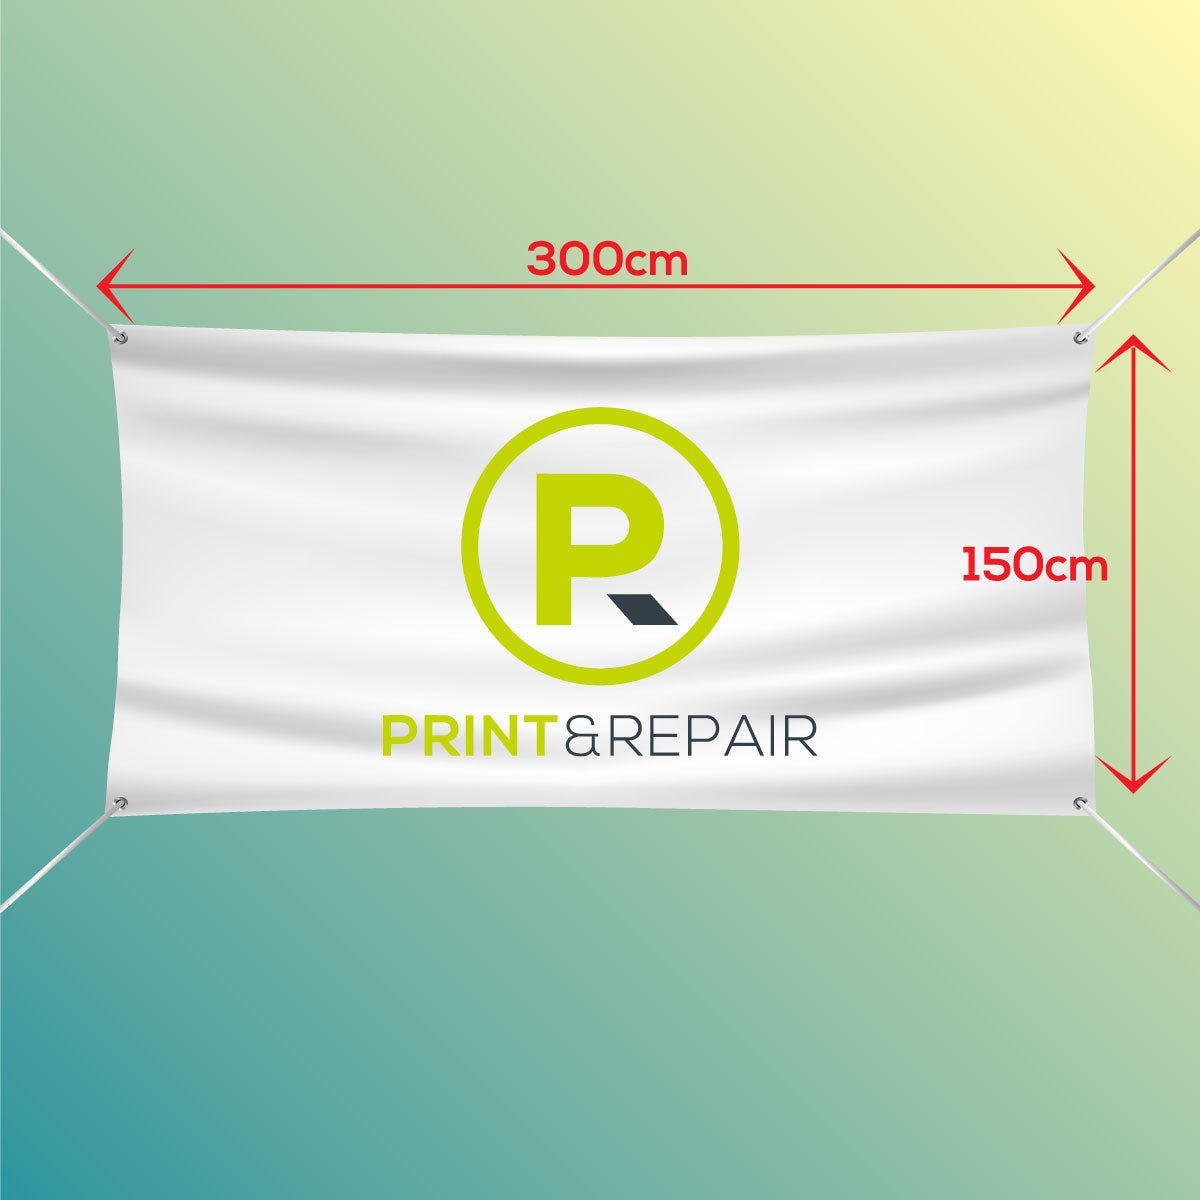 Banner with Eyelets - 300cm by 150cm